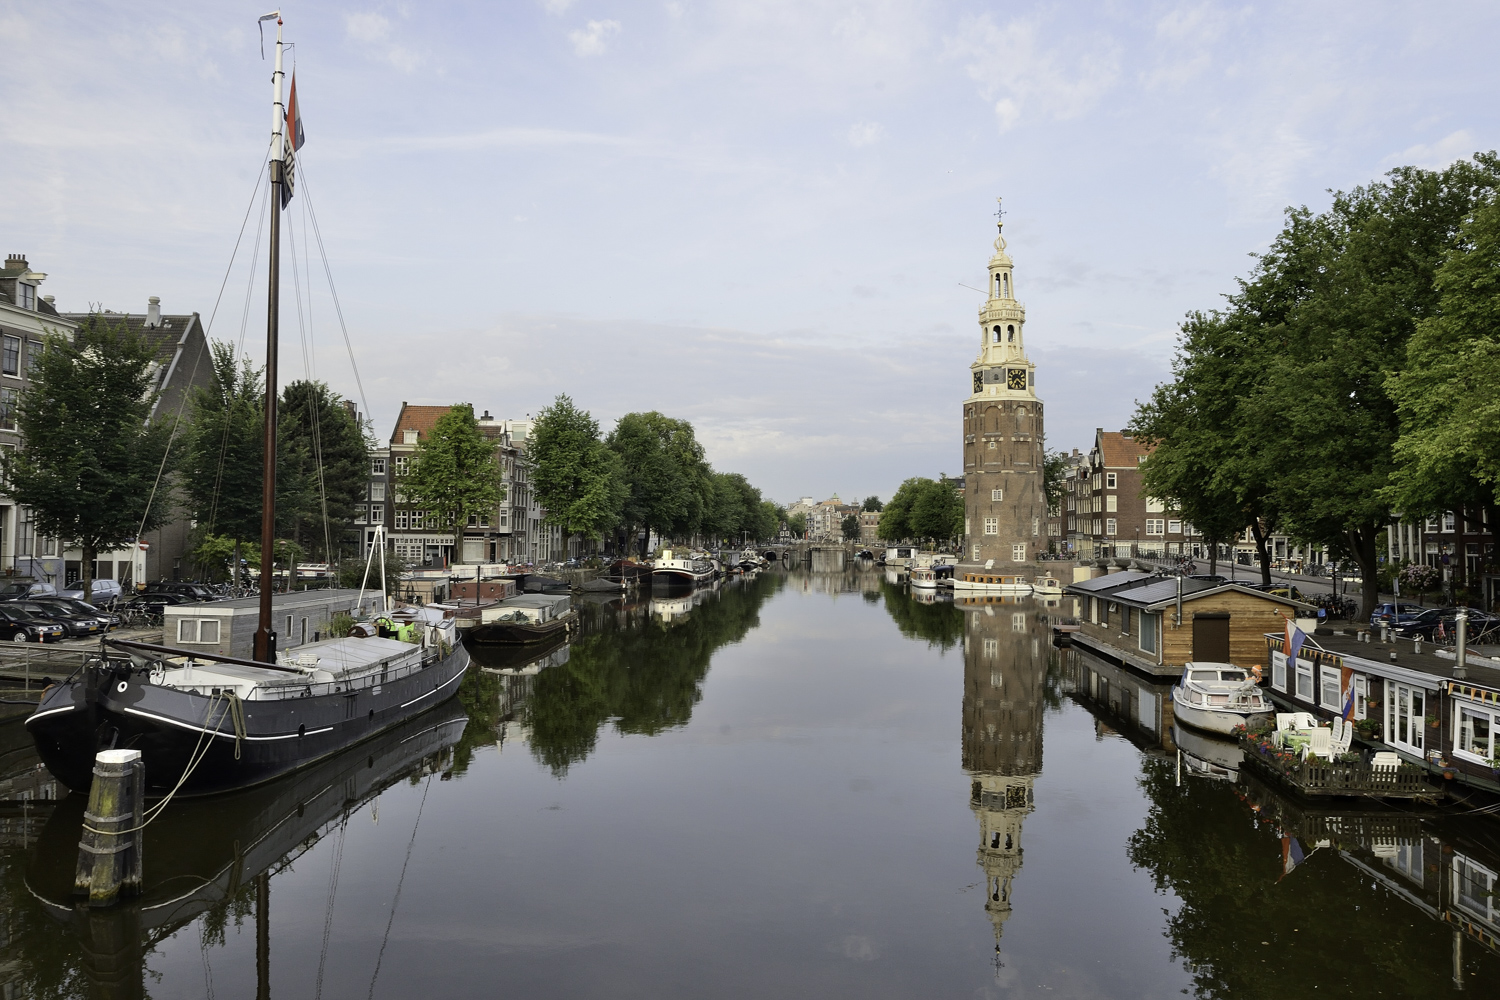 A photo of one of the canals in Amsterdam